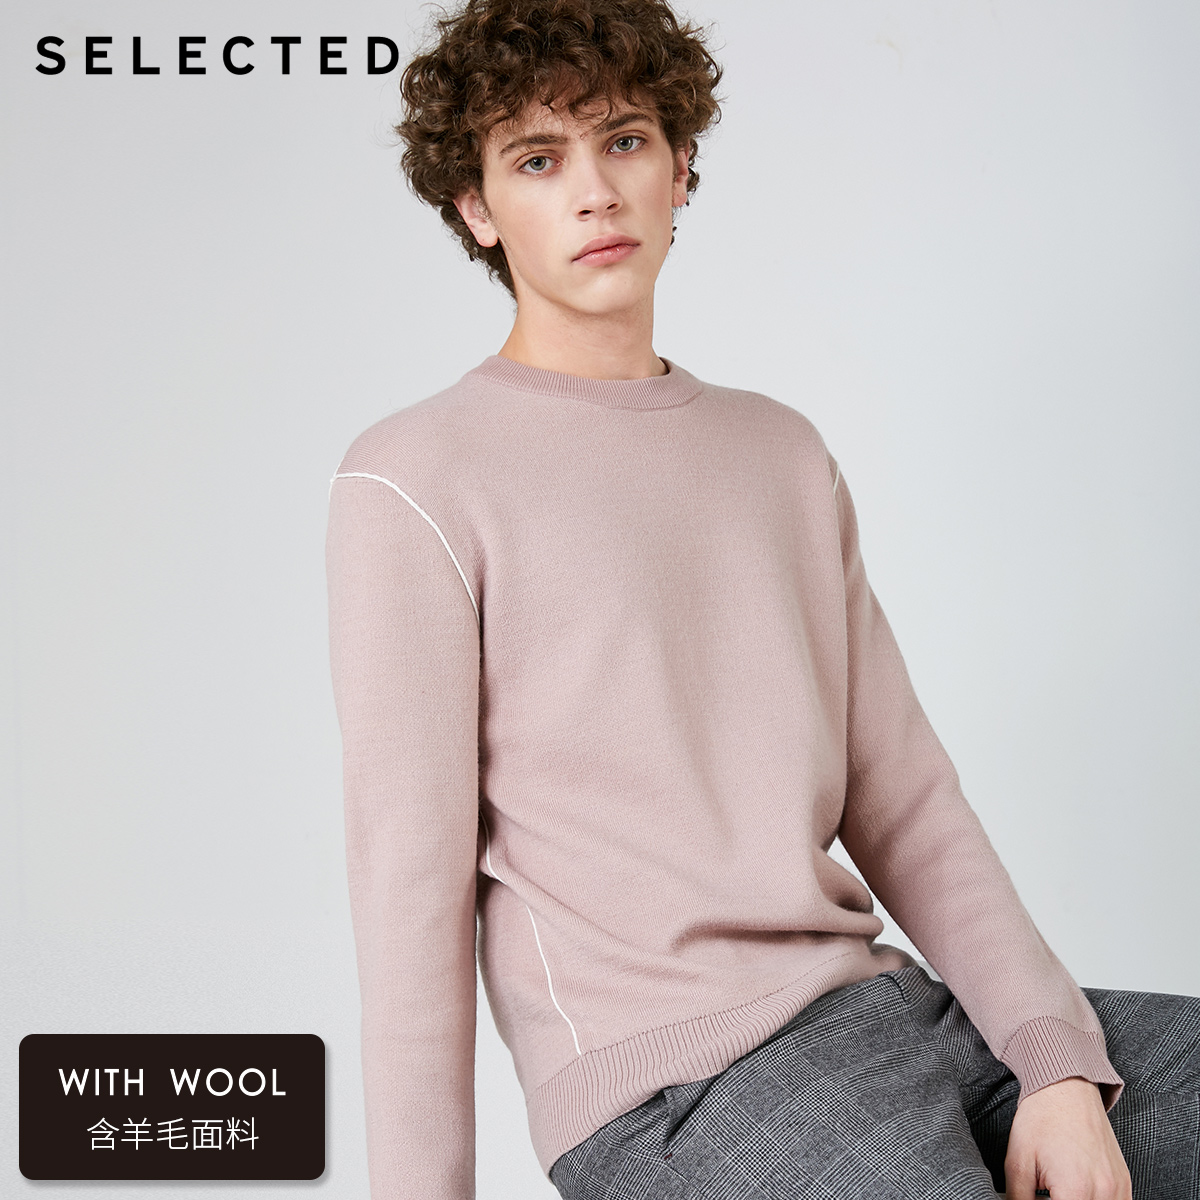 SELECTED Knitted Sweater Neckline Cotton-Blend Men's Round Regular Contrasting C-419124520